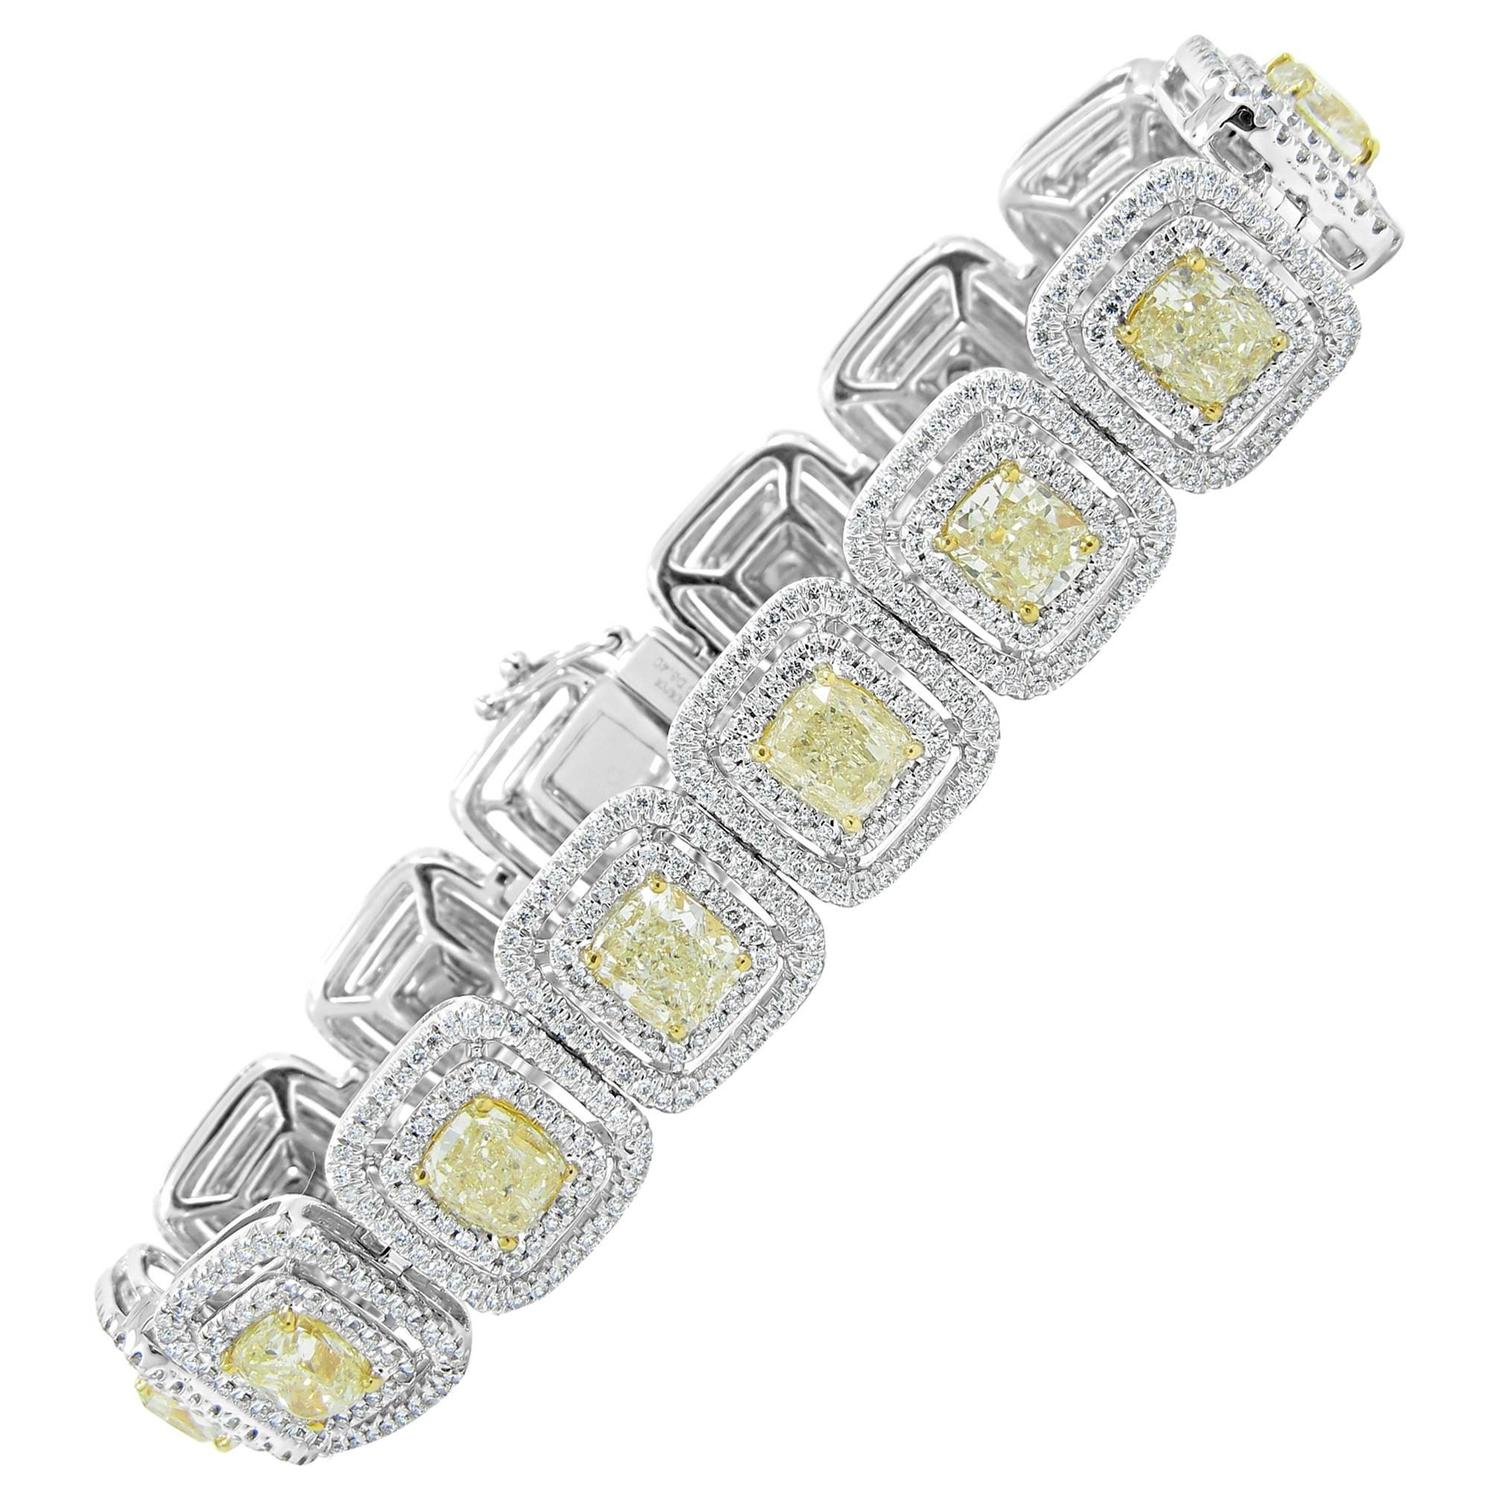 daquiri upscale diamond in platinum bracelet editor boodles unique scale shop daiquiri jewellery crop subsampling false product the